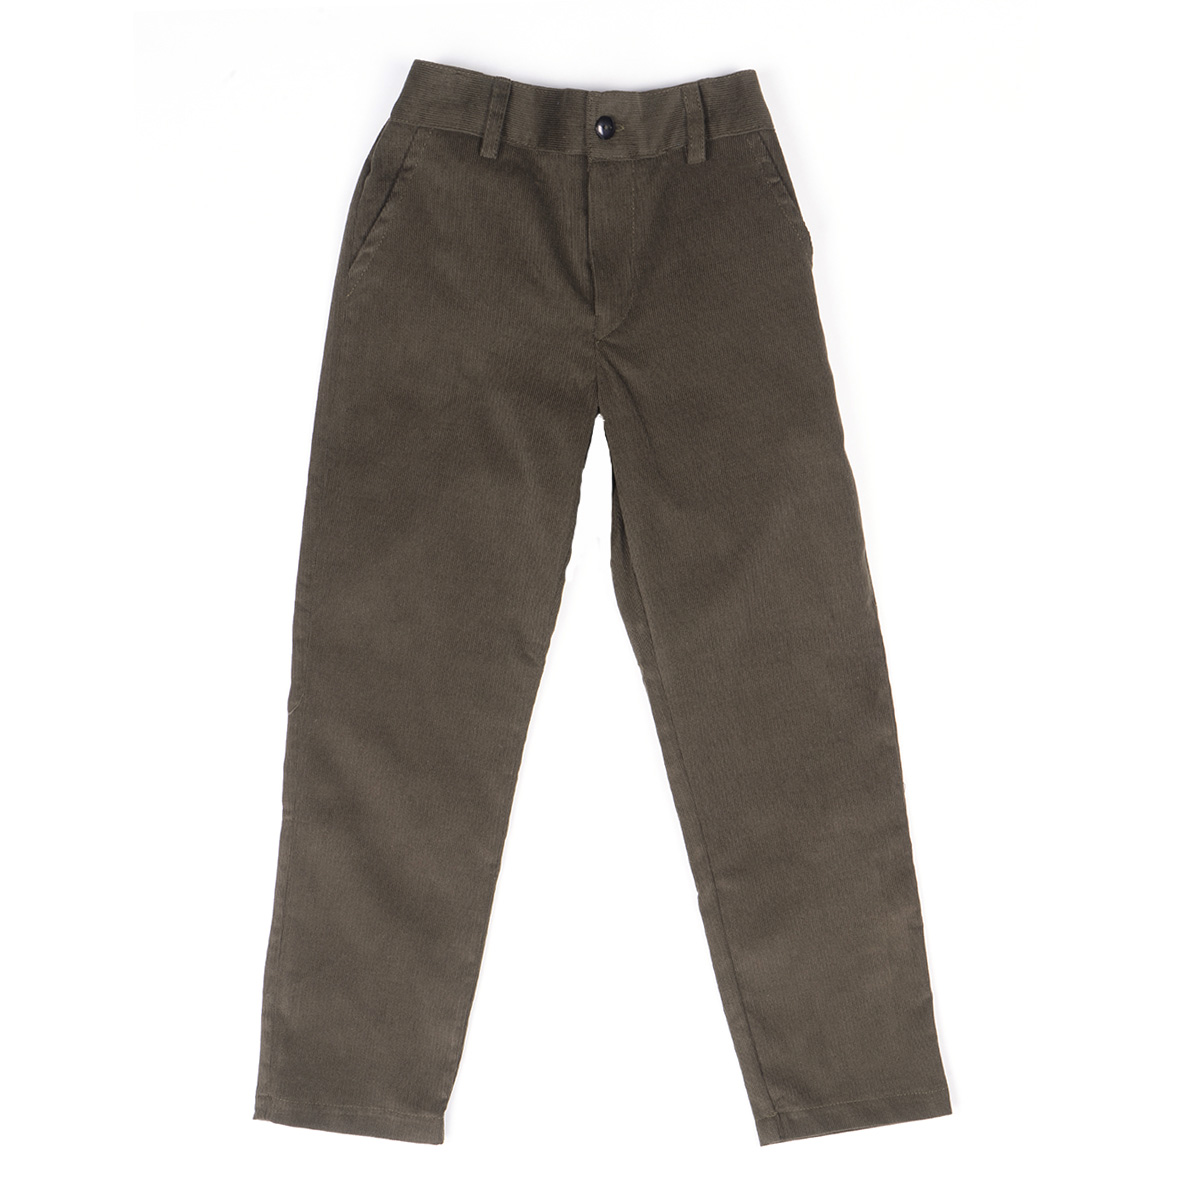 Amaia Theodore Trousers in Green front side